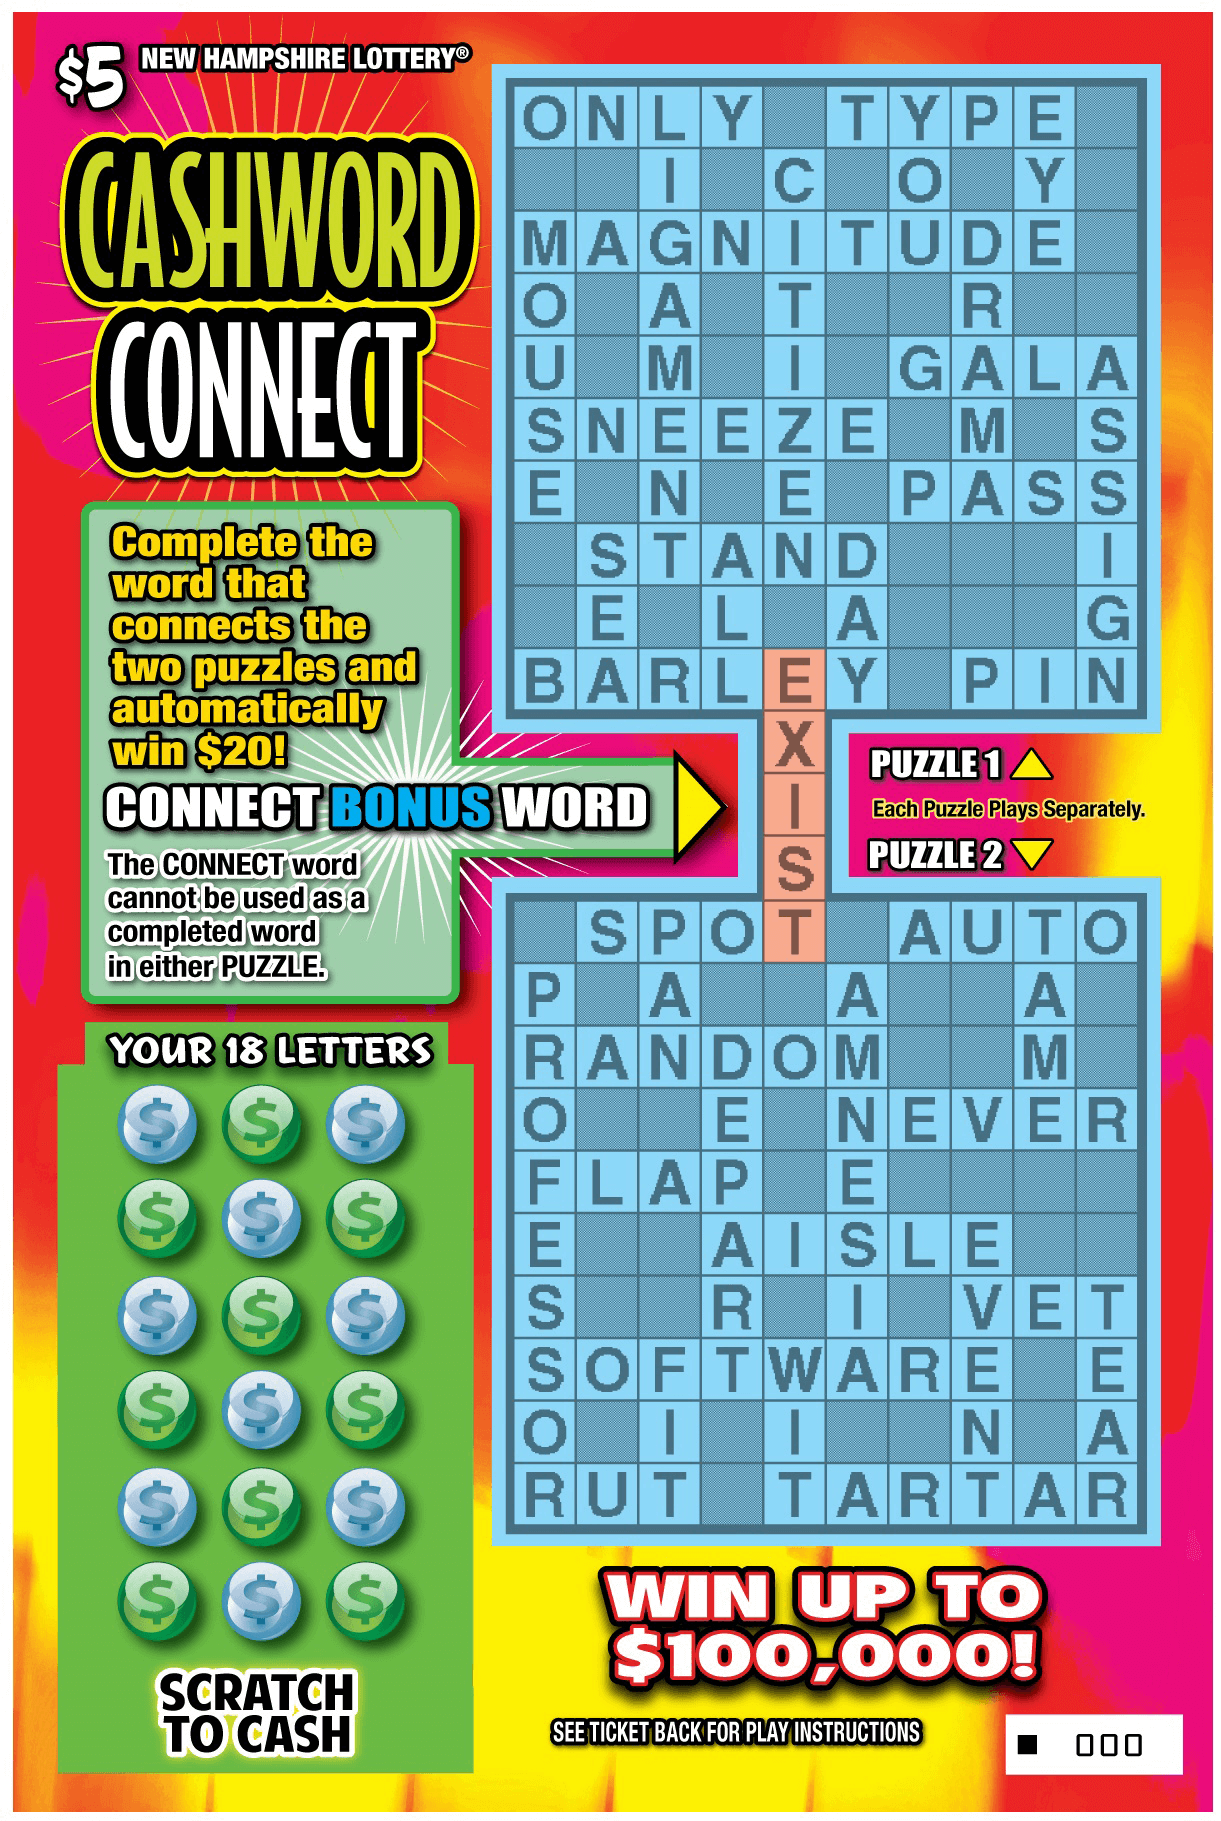 Cashword Connect | New Hampshire Lottery